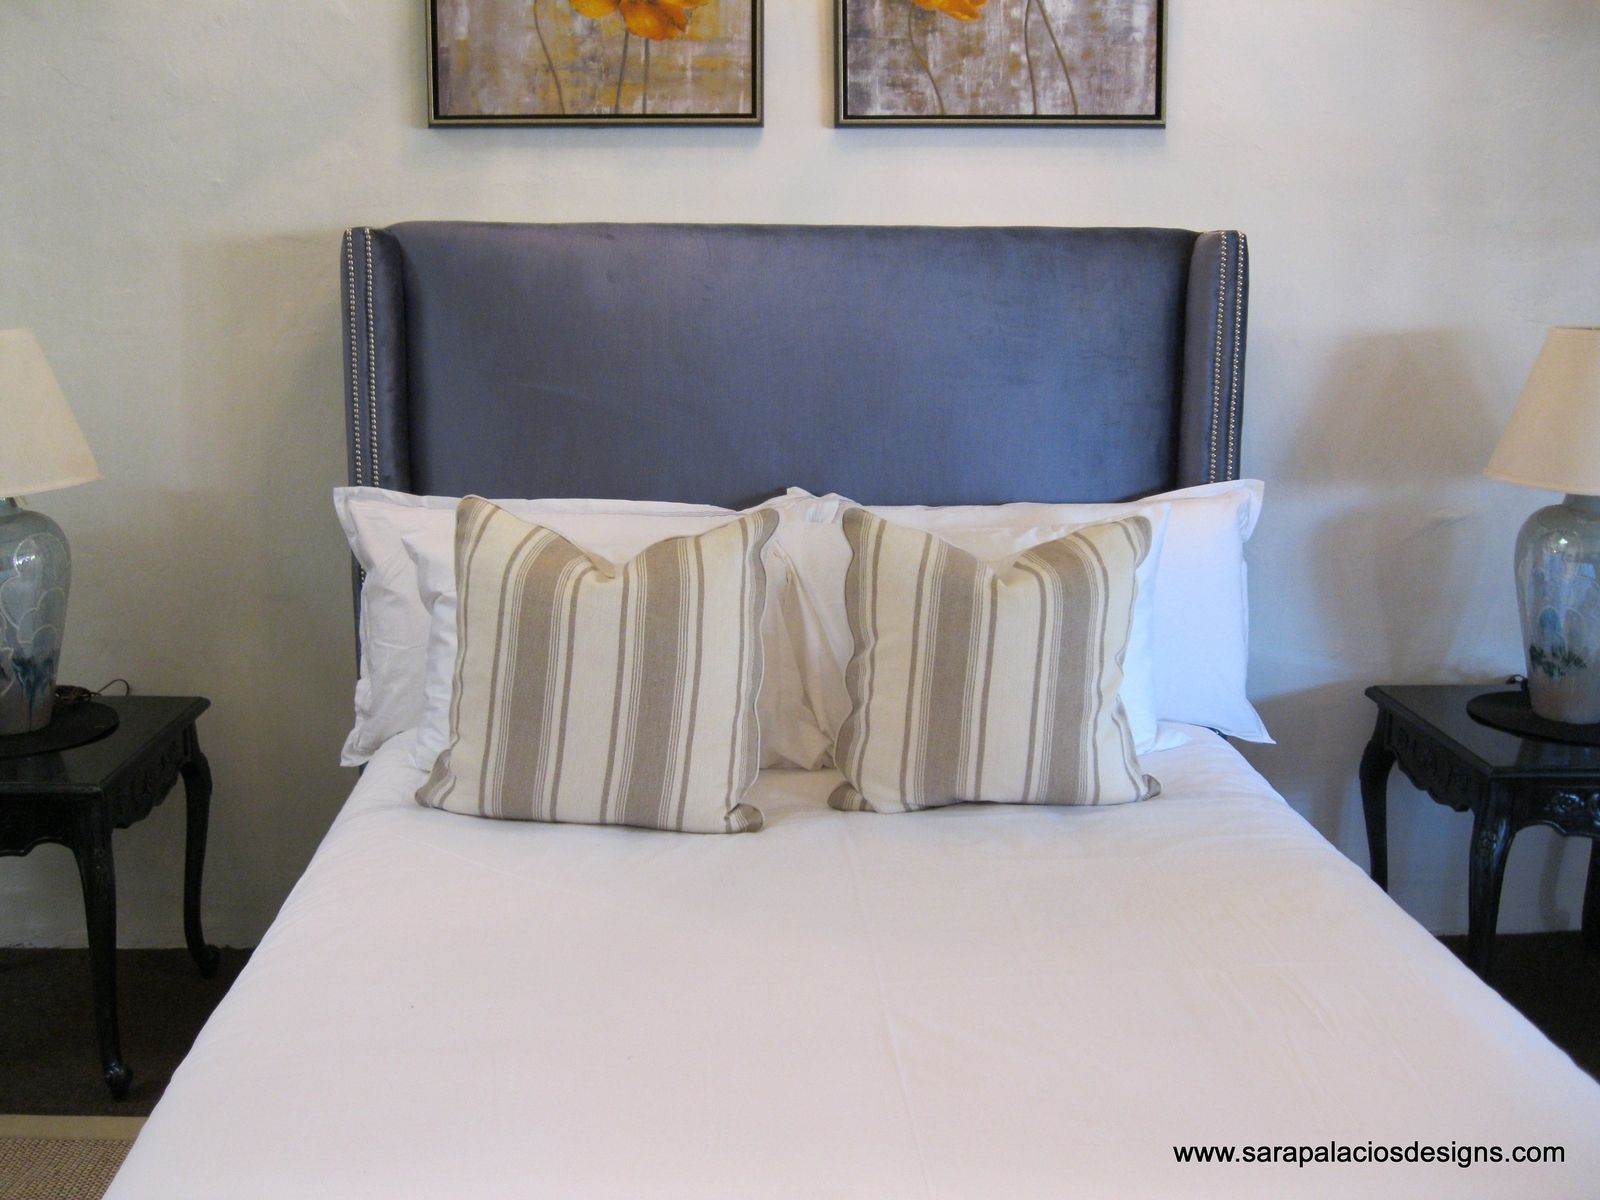 Custom Made Upholstered King Bed Headboard By Sara